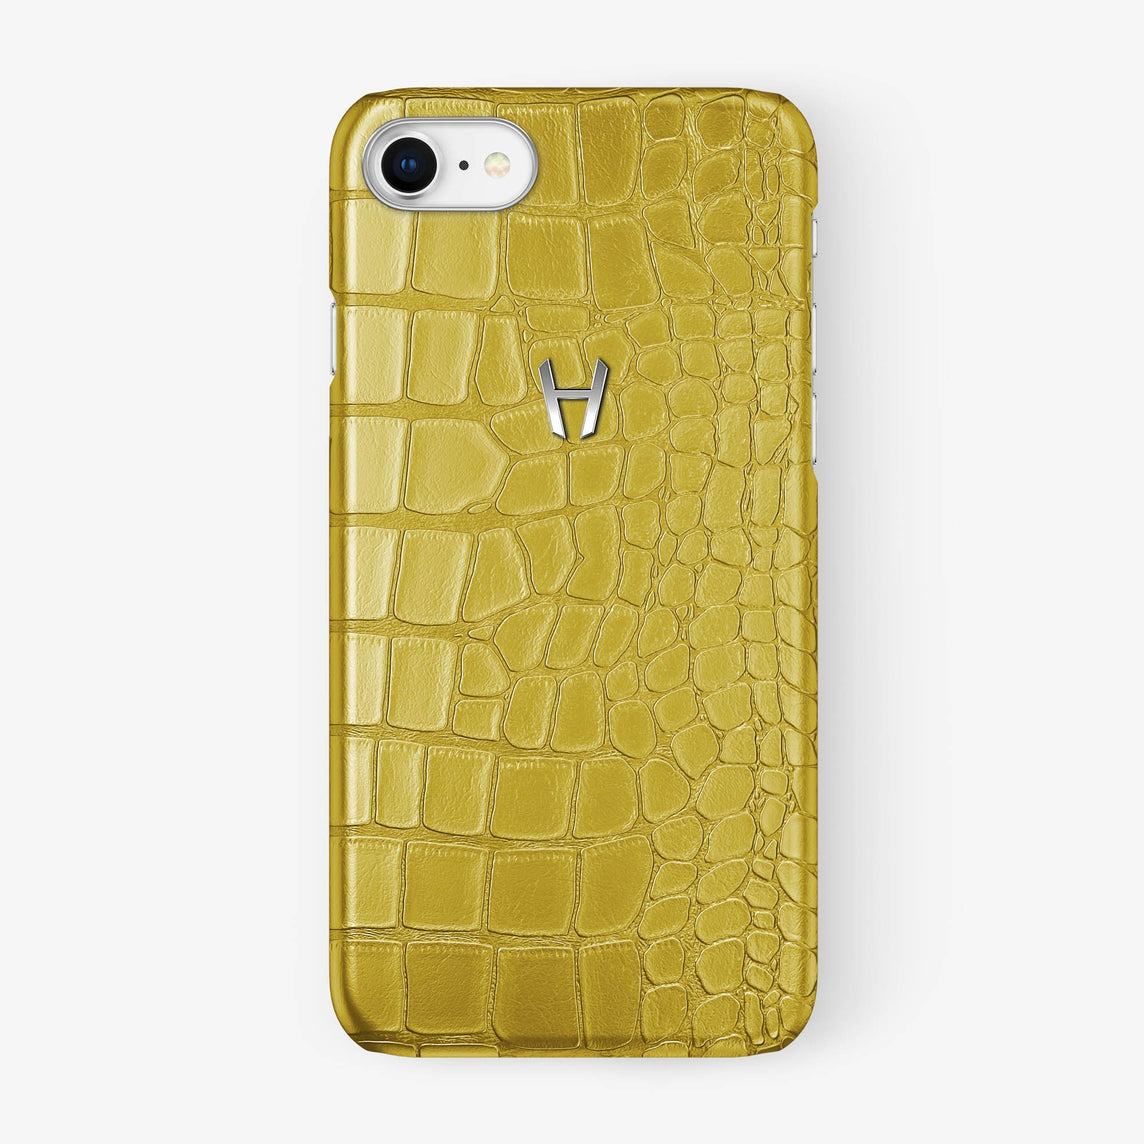 Alligator [iPhone Case] [model:iphone-7-8-case] [colour:yellow] [finishing:stainless-steel] - Hadoro